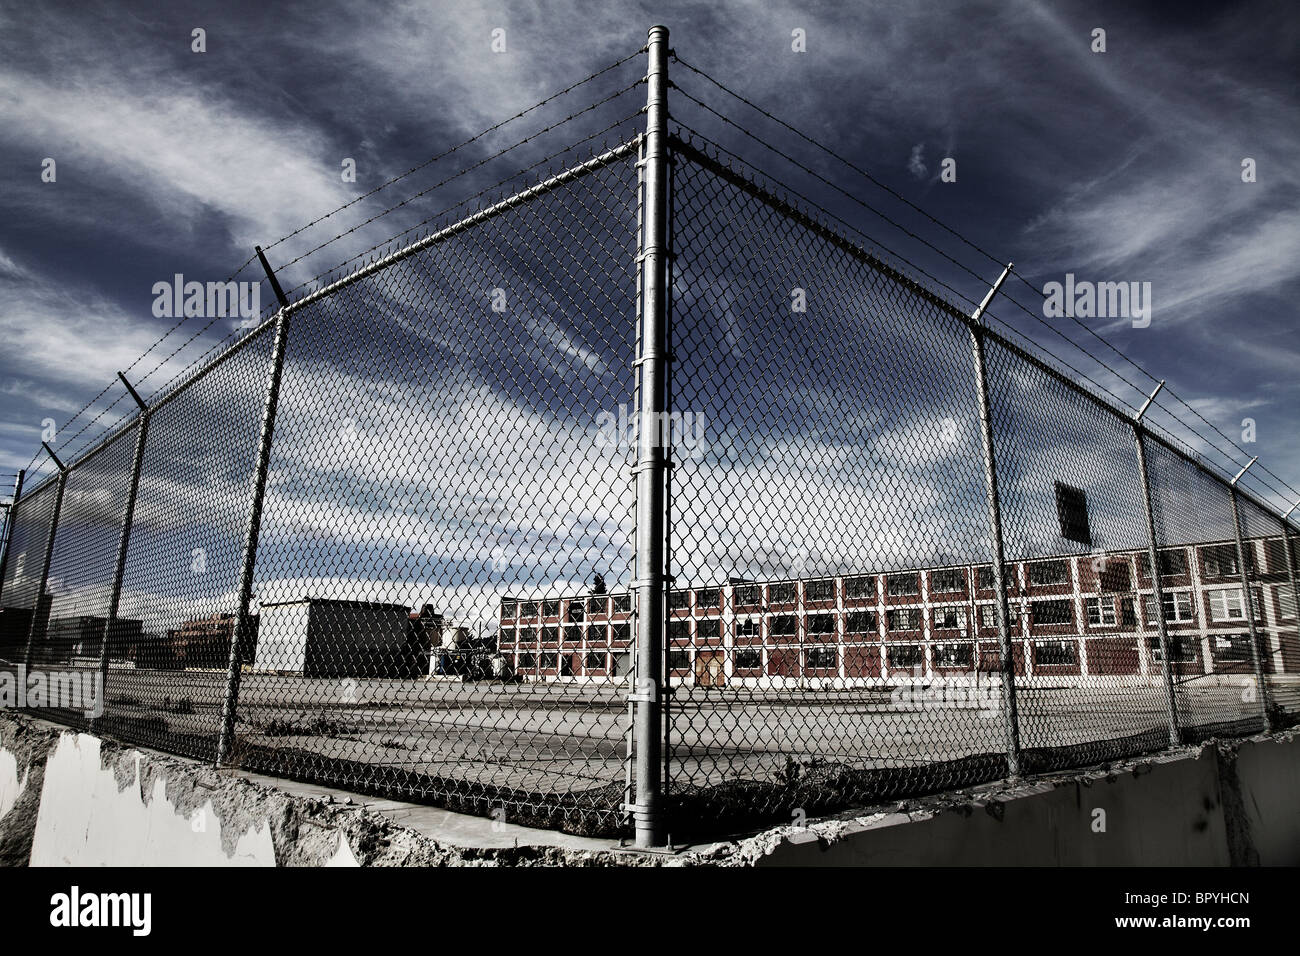 A fence in front of a factory building with a dramatic sky. - Stock Image